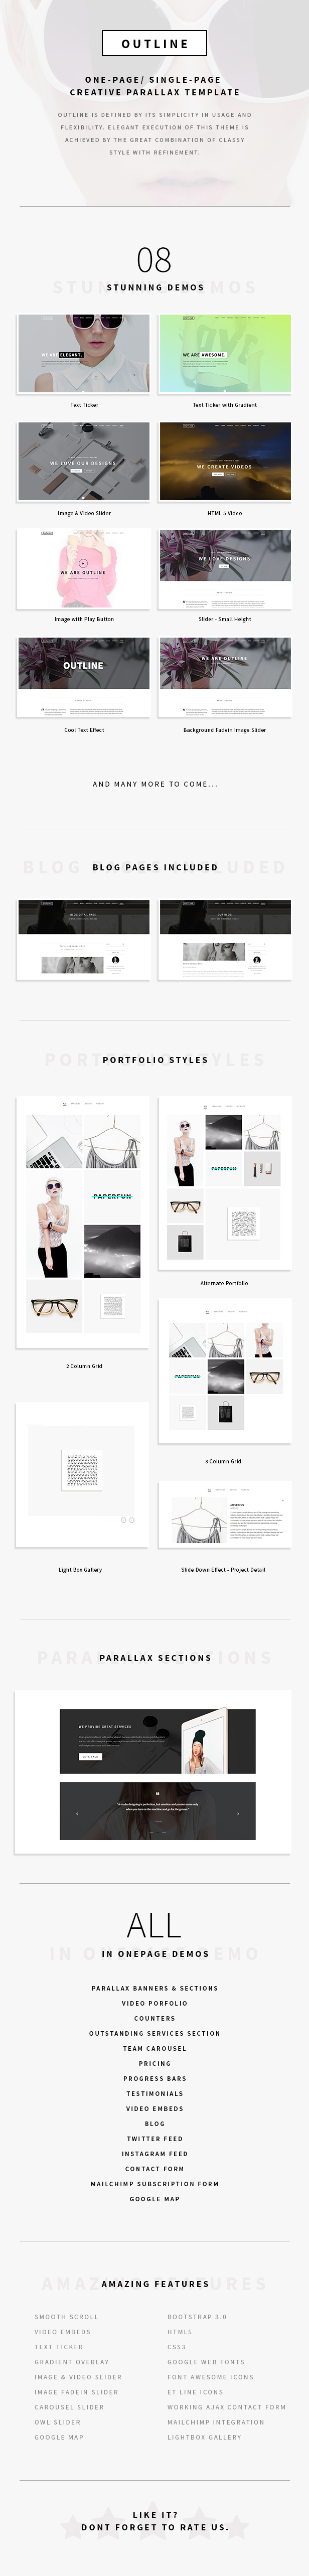 Outline – Creative One Page/Single Page Portfolio